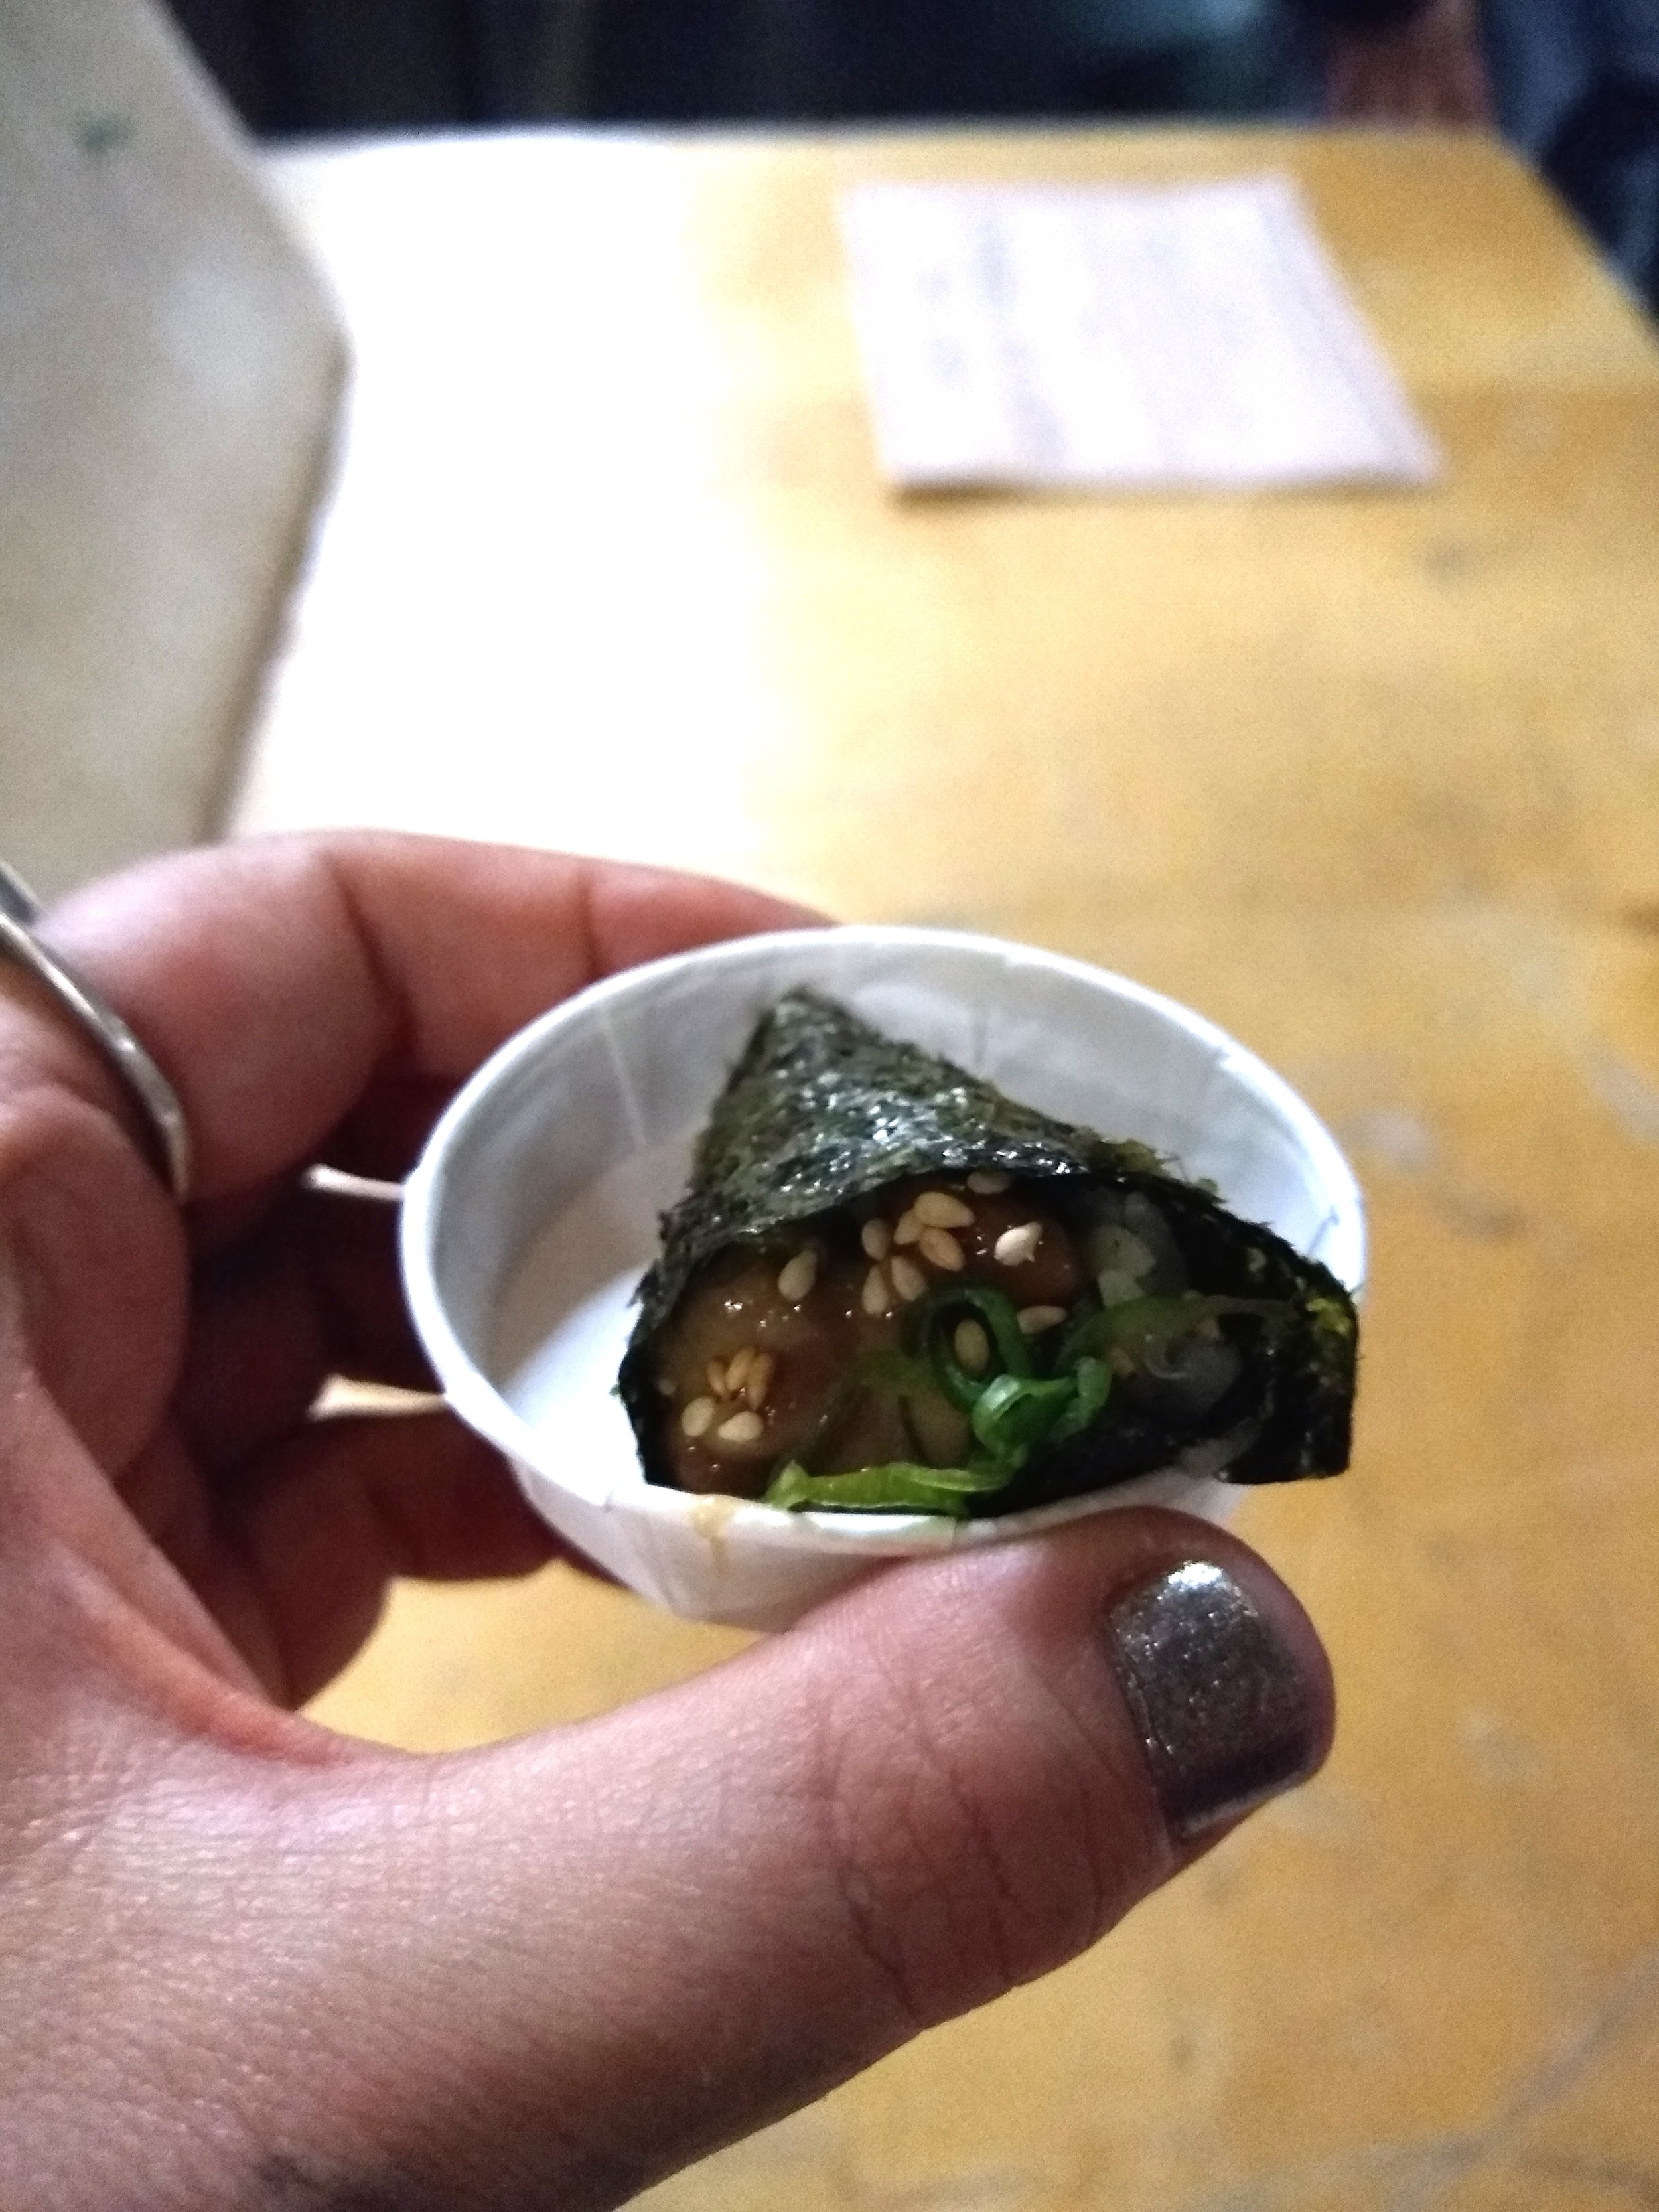 Aaaand a closeup of the crazy tasty Wanpaku Natto mini temaki ;)